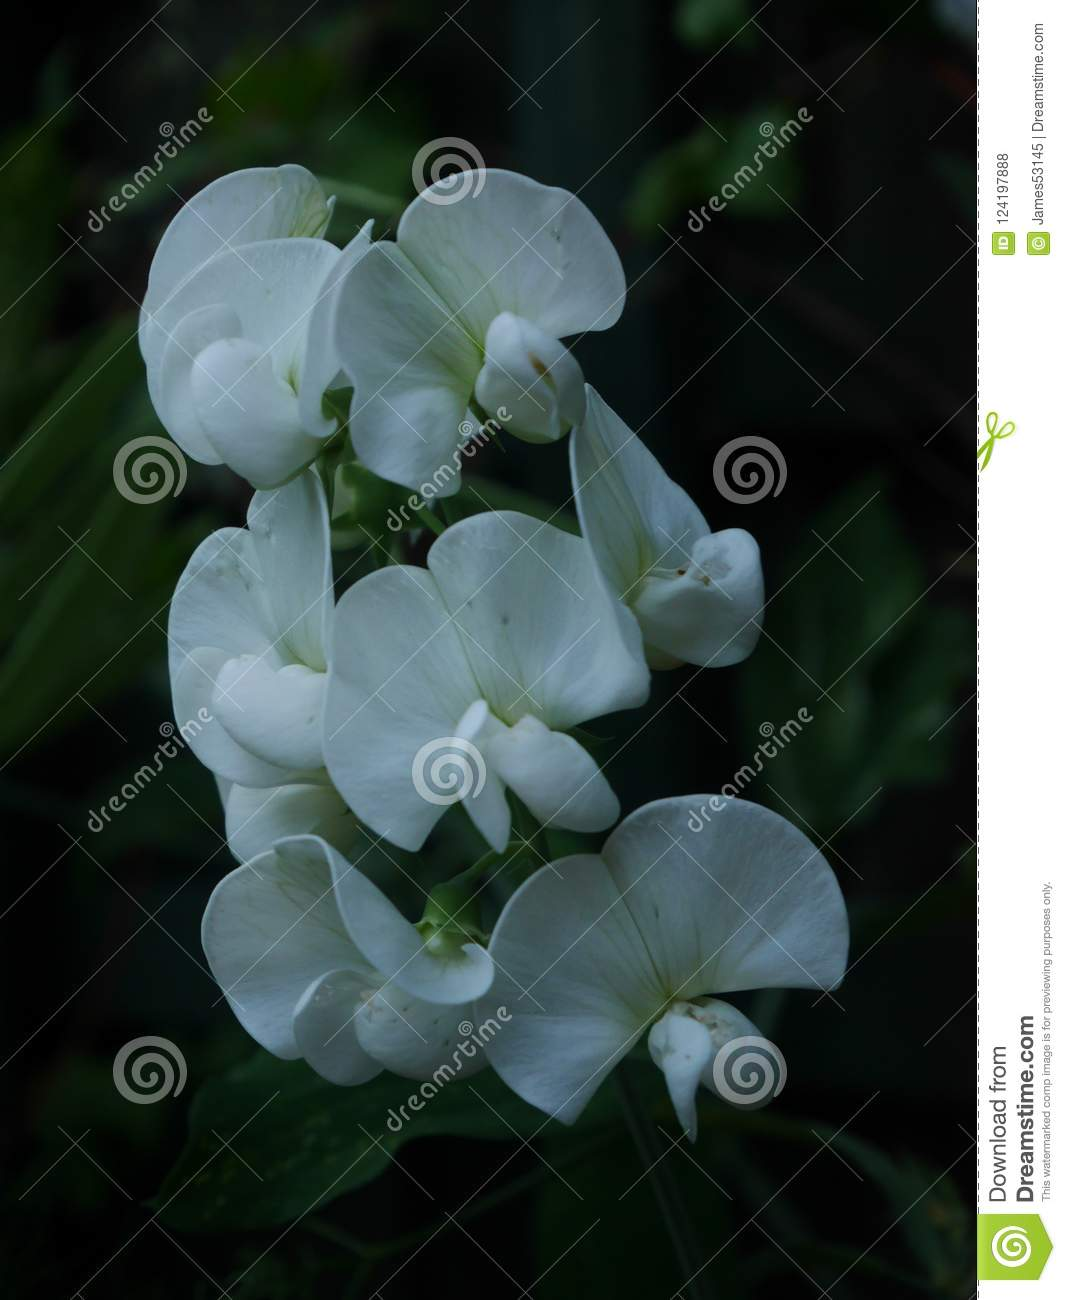 White Everlasting Sweet Pea Flowers Stock Photo Image Of Nature